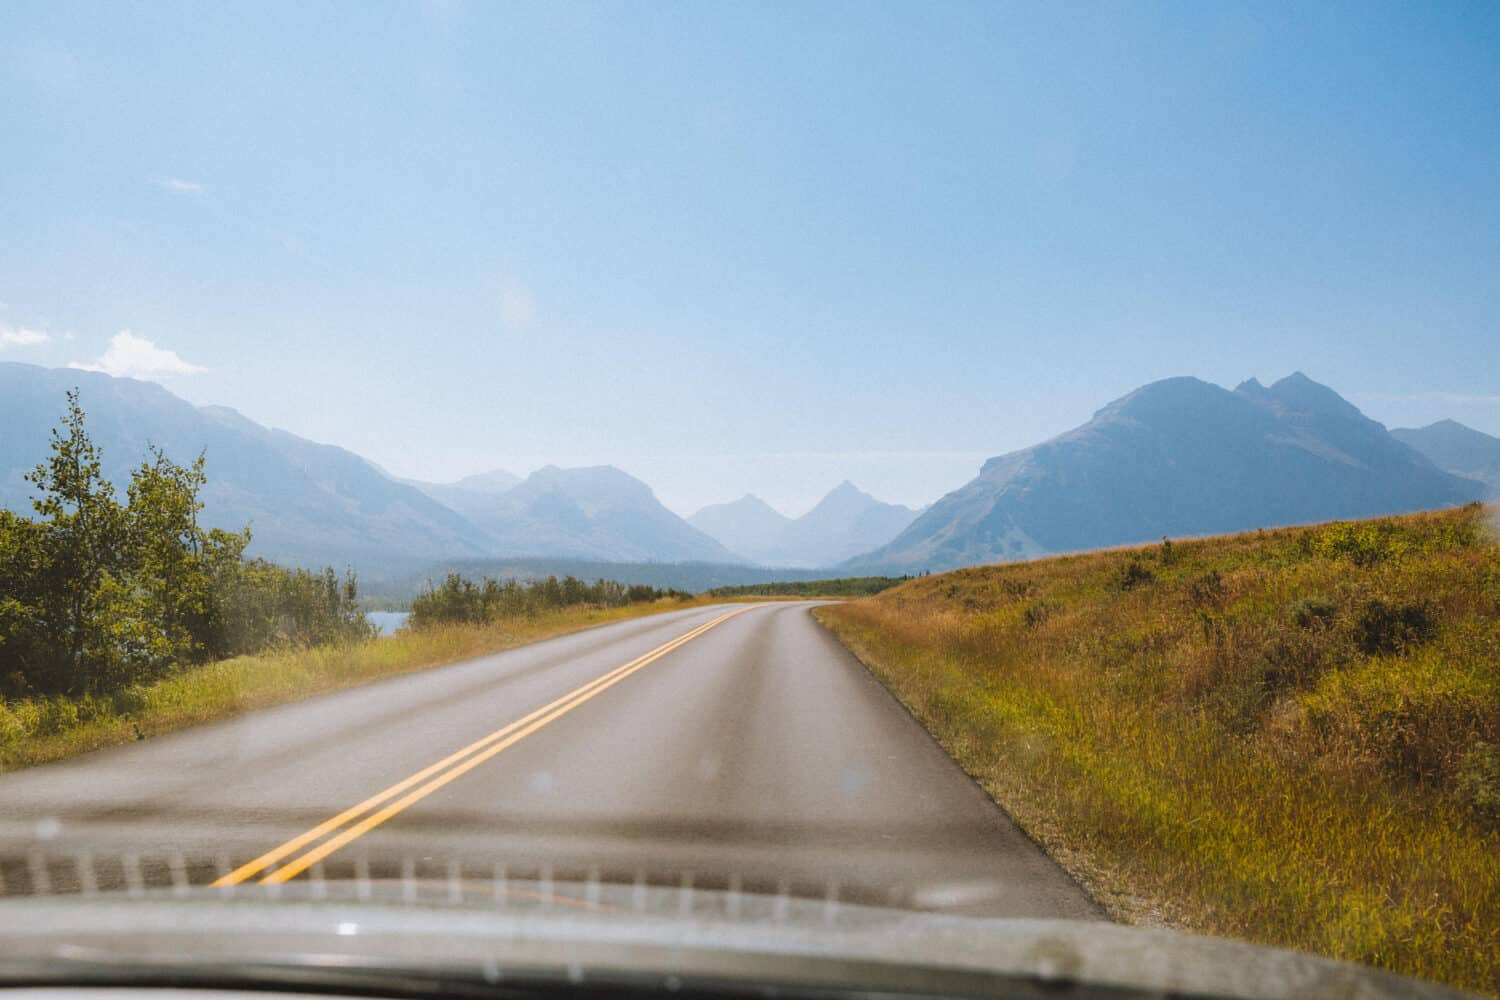 Driving on the Going-To-The-Sun-Road in Glacier National Park